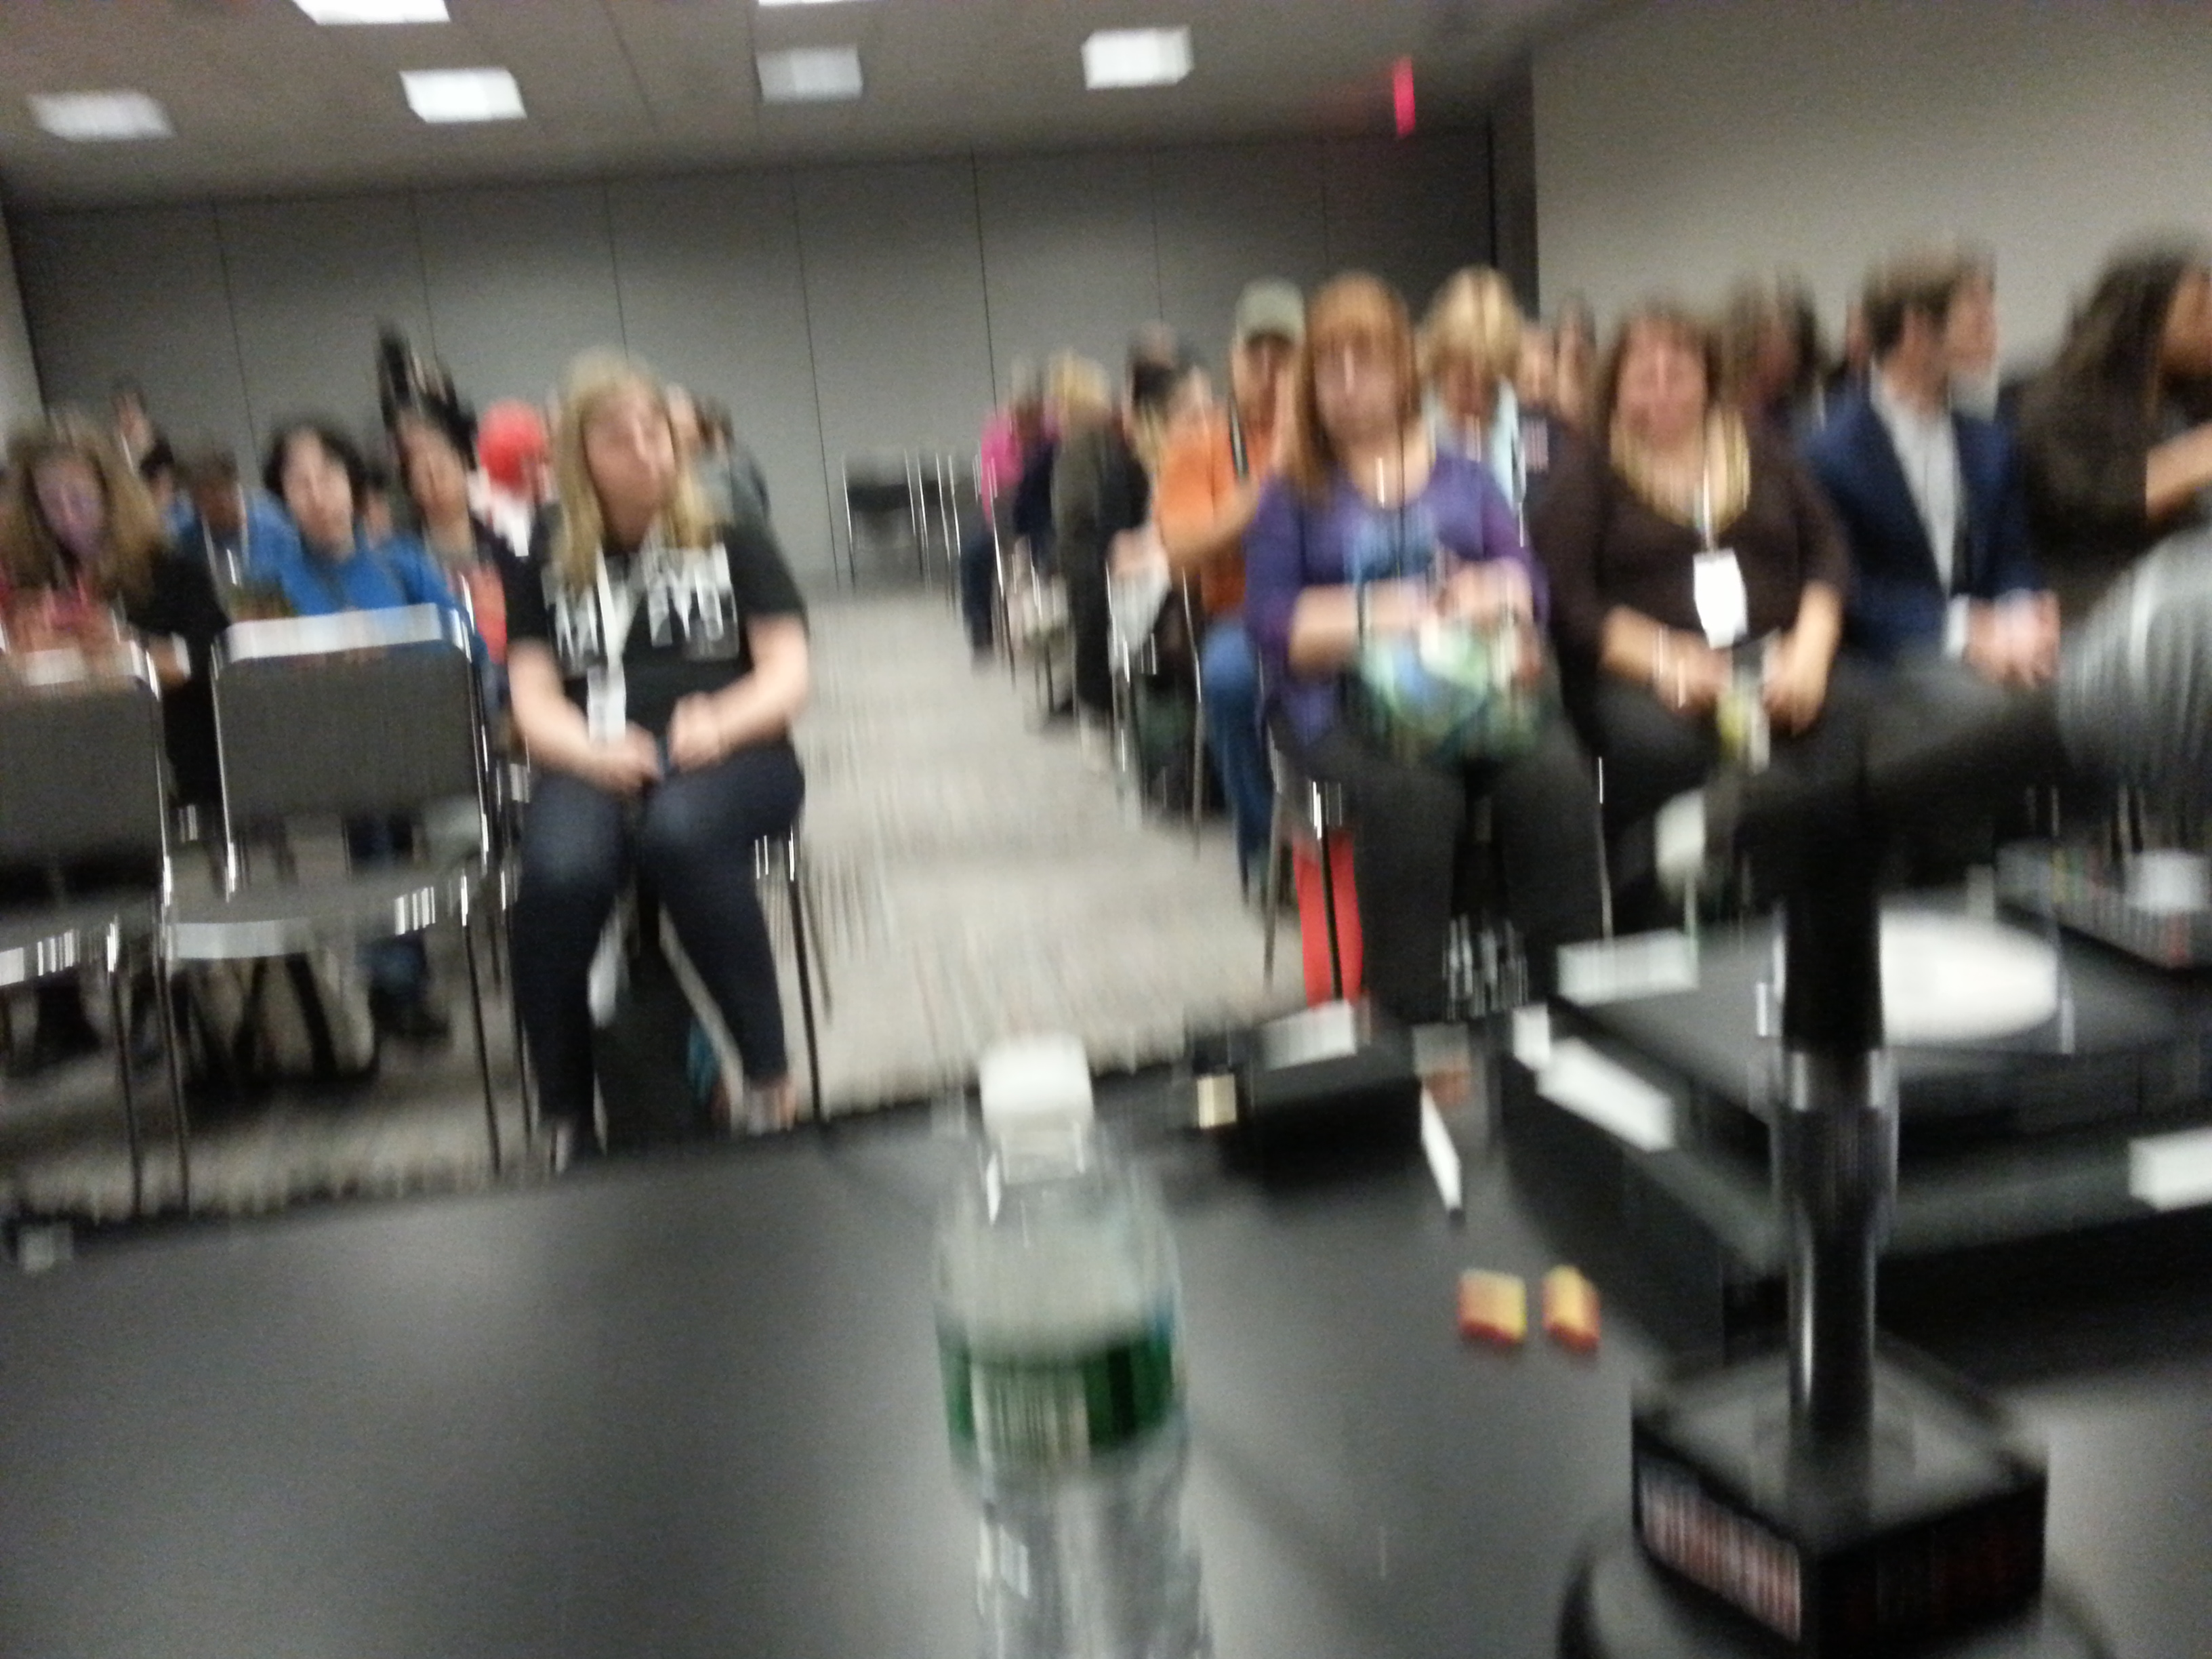 NYCC Panel View